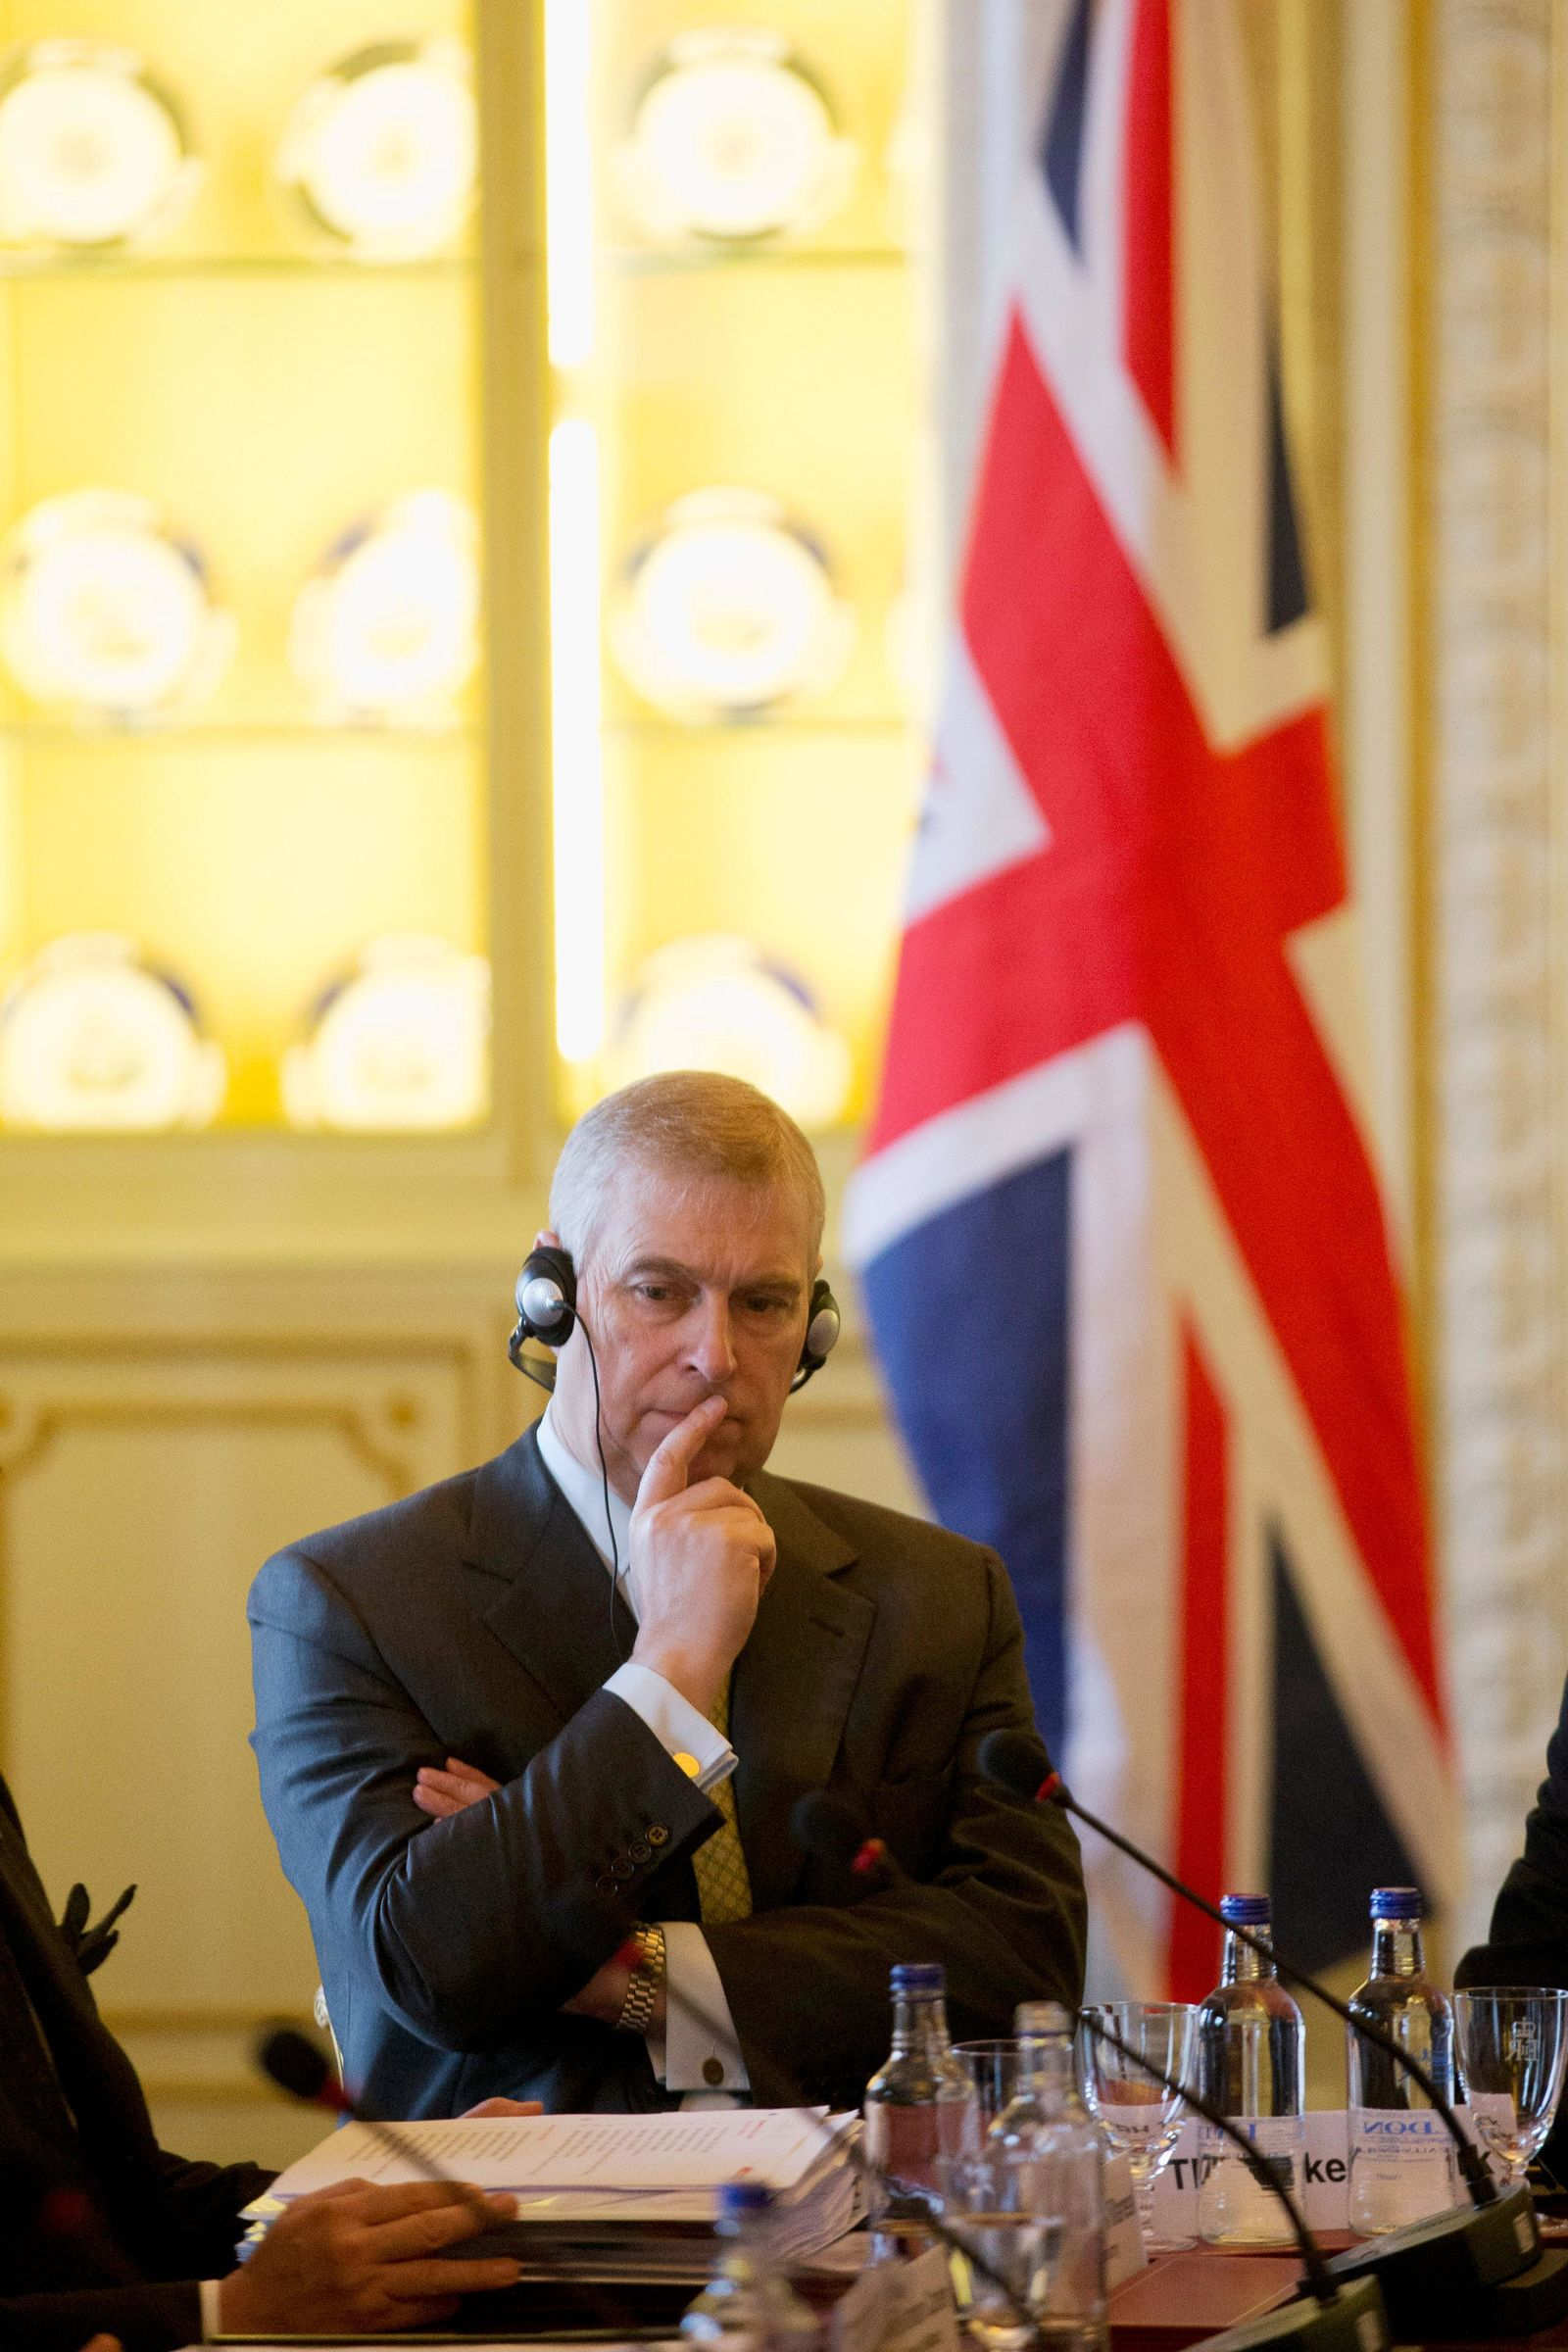 FILE - In this file photo dated Wednesday, March 4, 2015, Britain's Prince Andrew listens as he sits at the top of the table with Mexican President Enrique Pena Nieto and various political leaders during a business breakfast meeting at Buckingham Palace in London. (AP Photo/Matt Dunham, FILE)